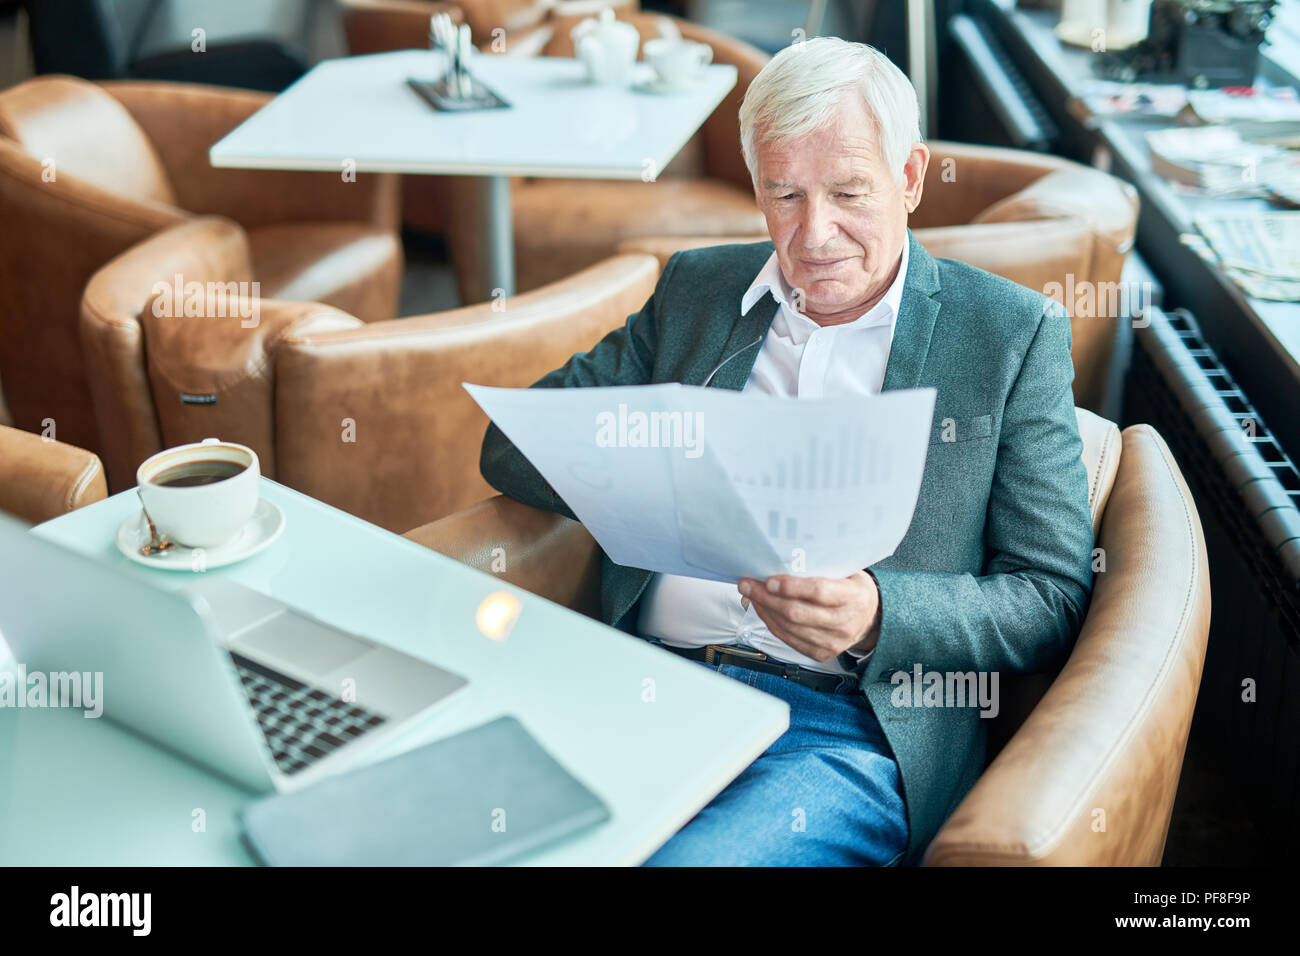 Aged businessman reading documents in cafe - Stock Image